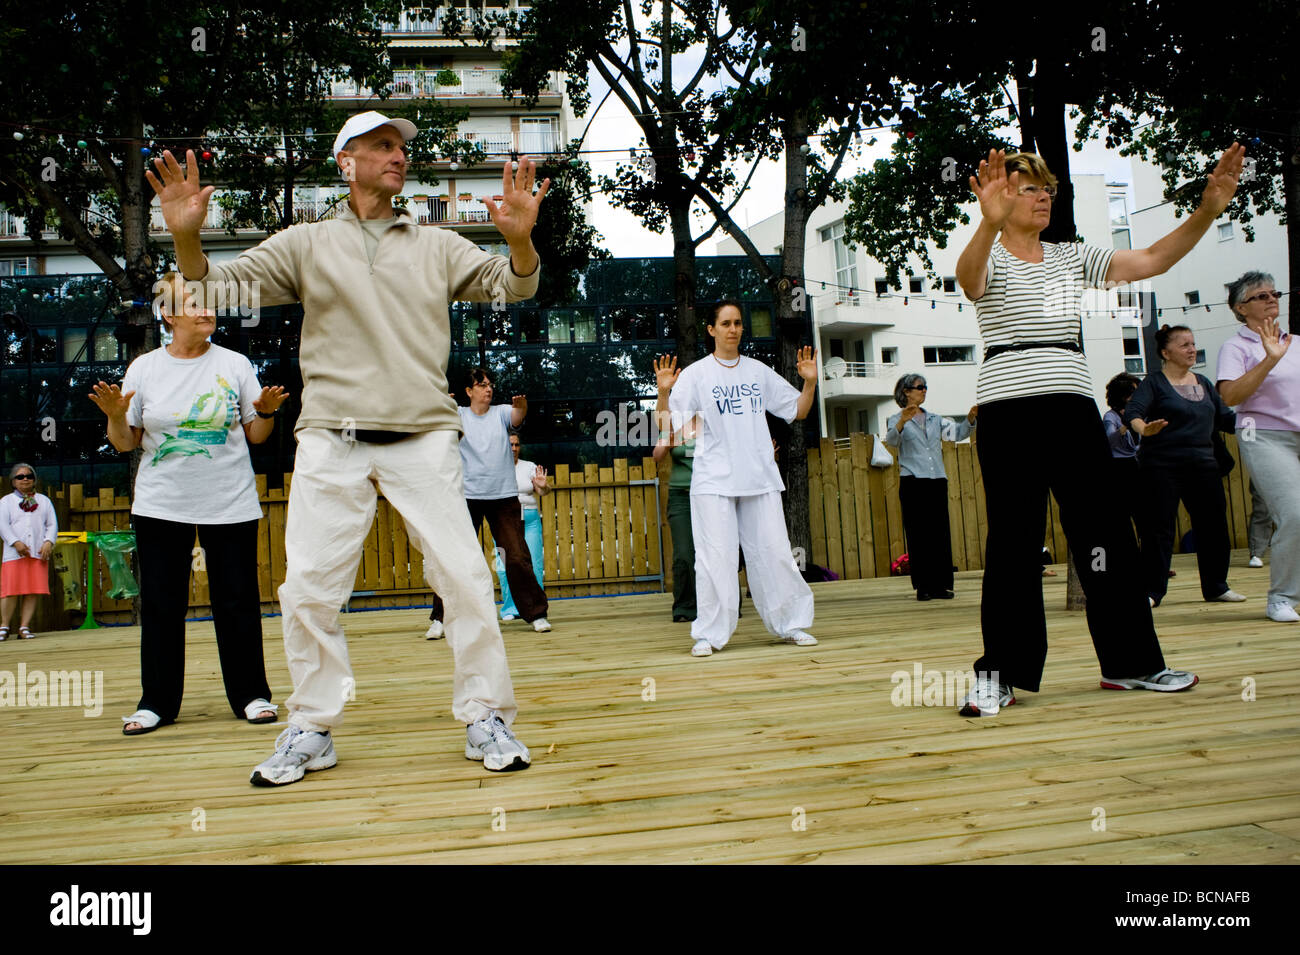 Paris France, Public Events, Senior Adults Practicing Tai Chi at 'Paris Plages' Summer Street Festival, - Stock Image